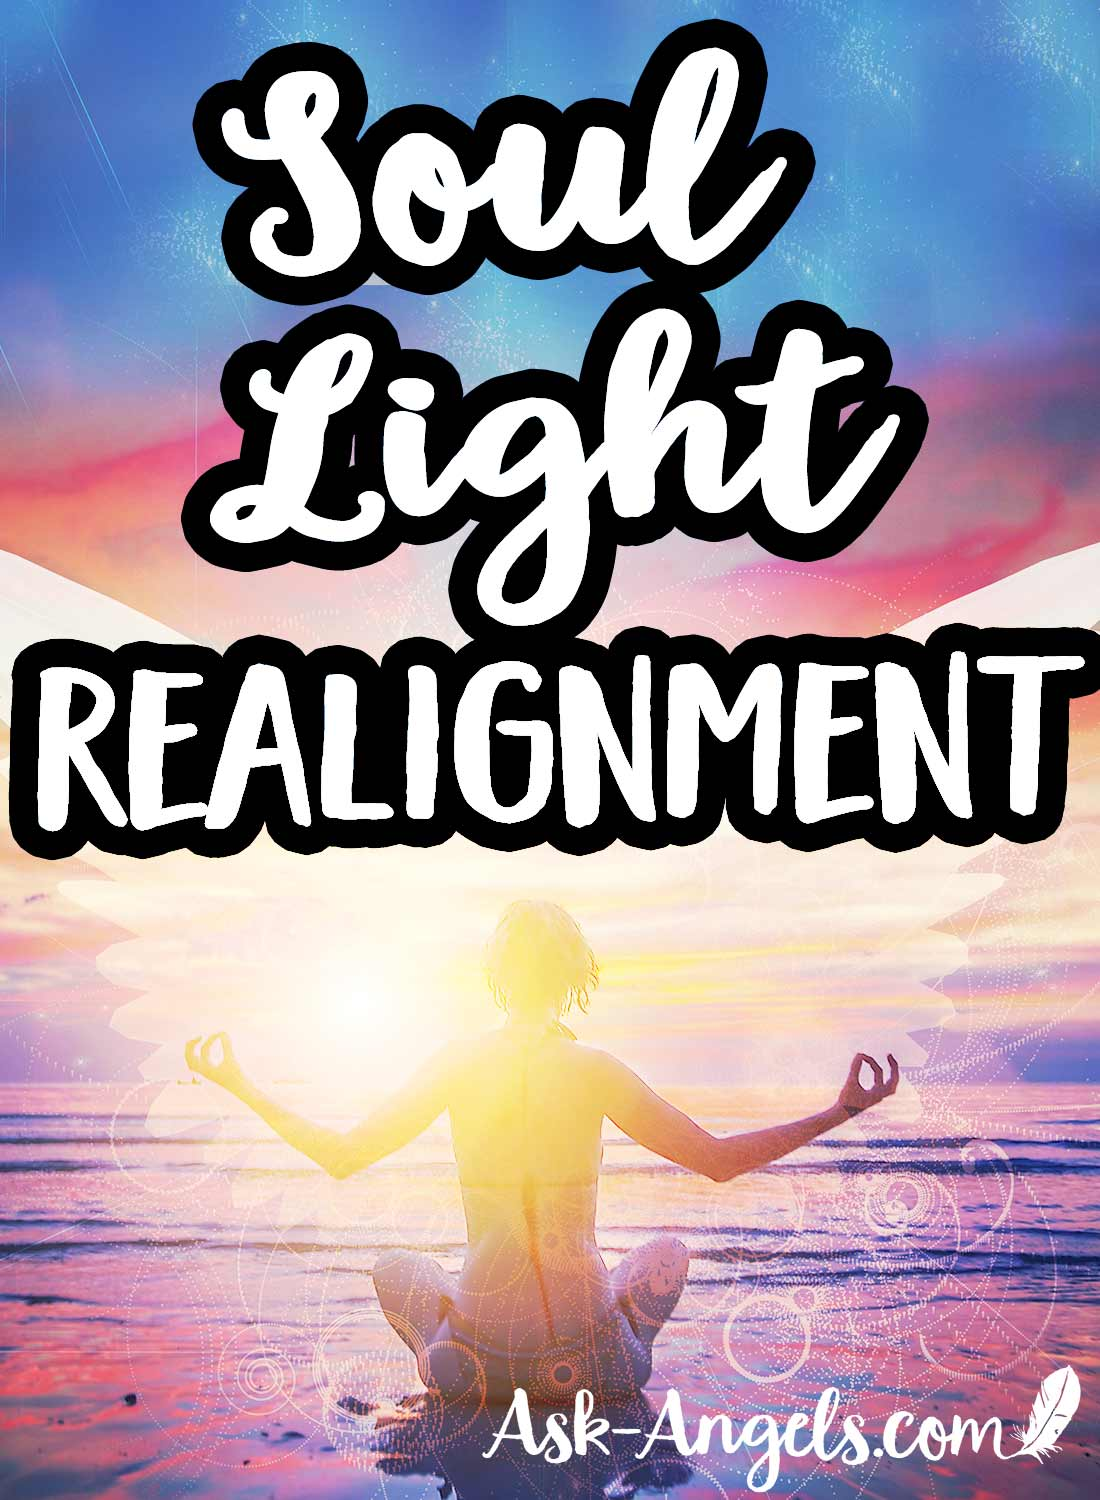 Soul Light Realignment